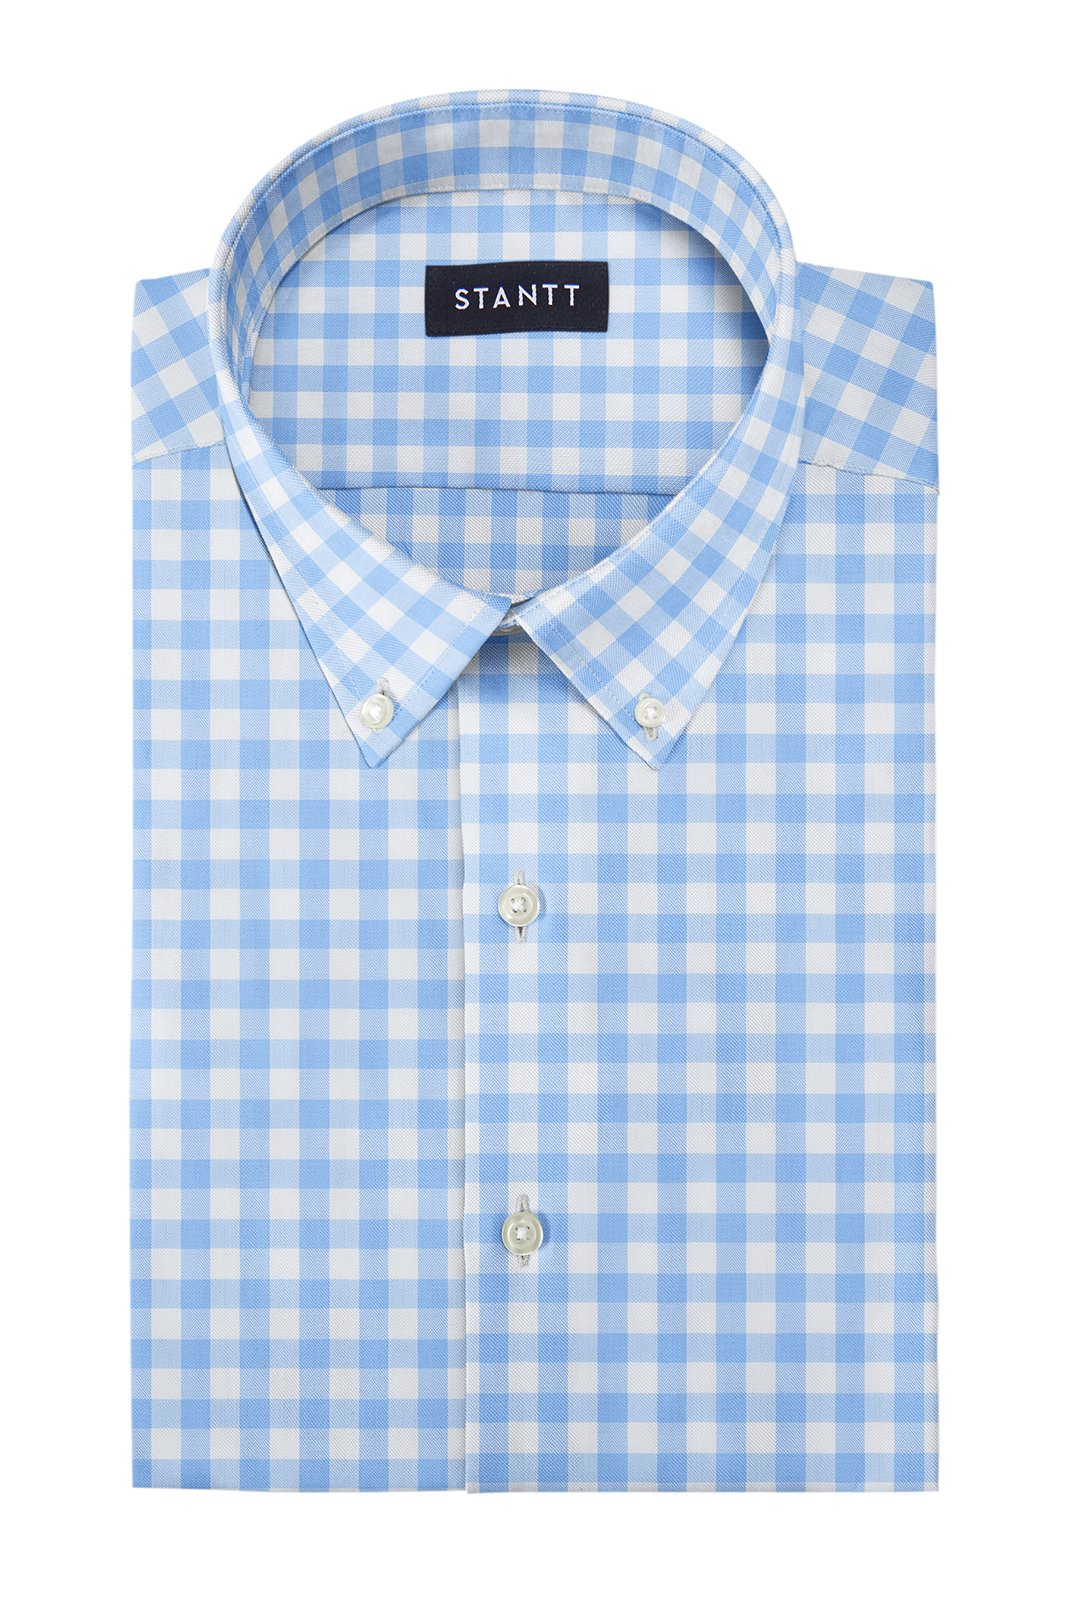 Duca Light Blue Gingham: Button-Down Collar, Barrel Cuff